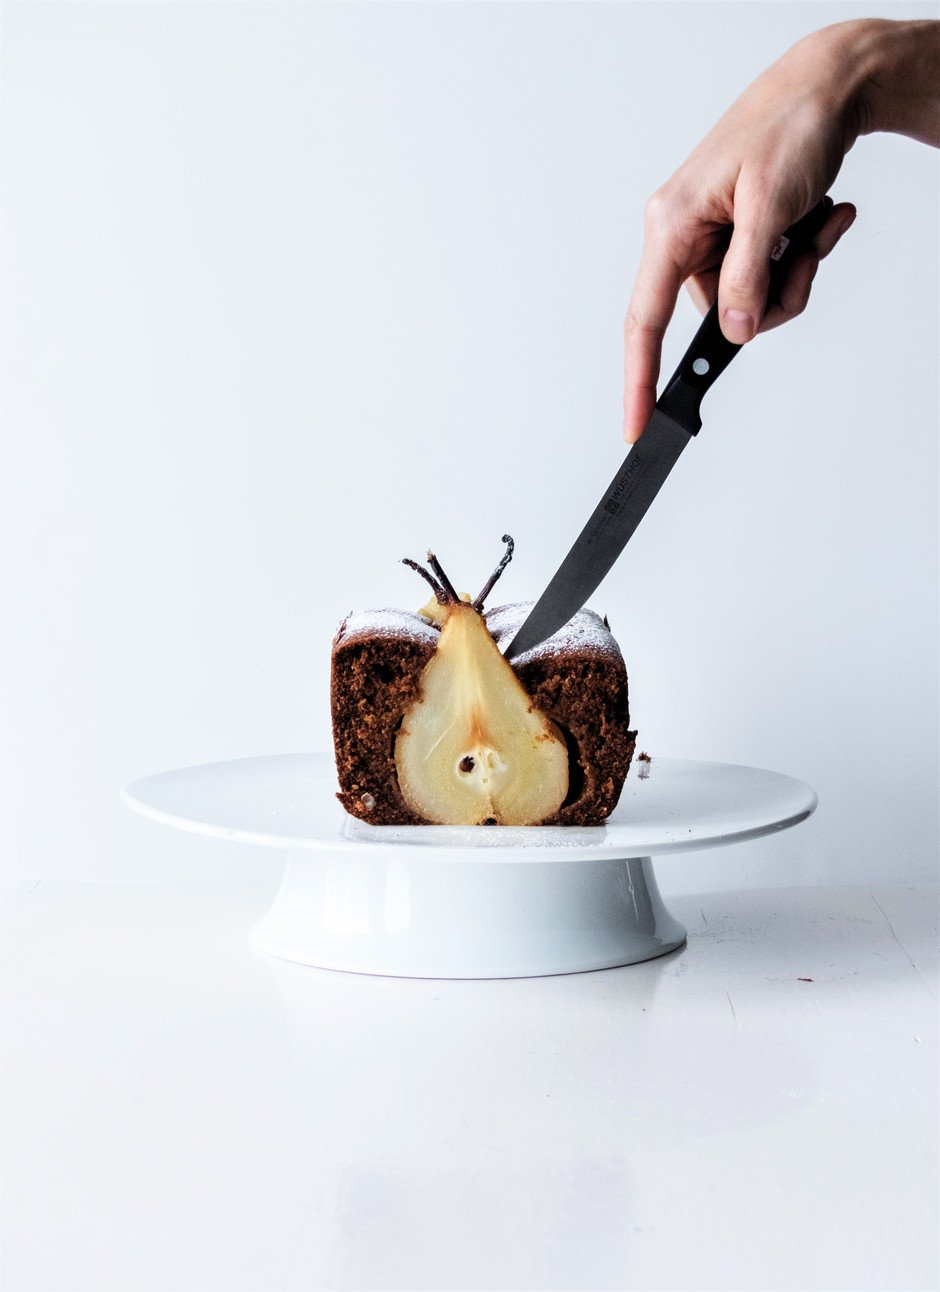 a head on image of a person cutting a slice of gingerbread loaf.